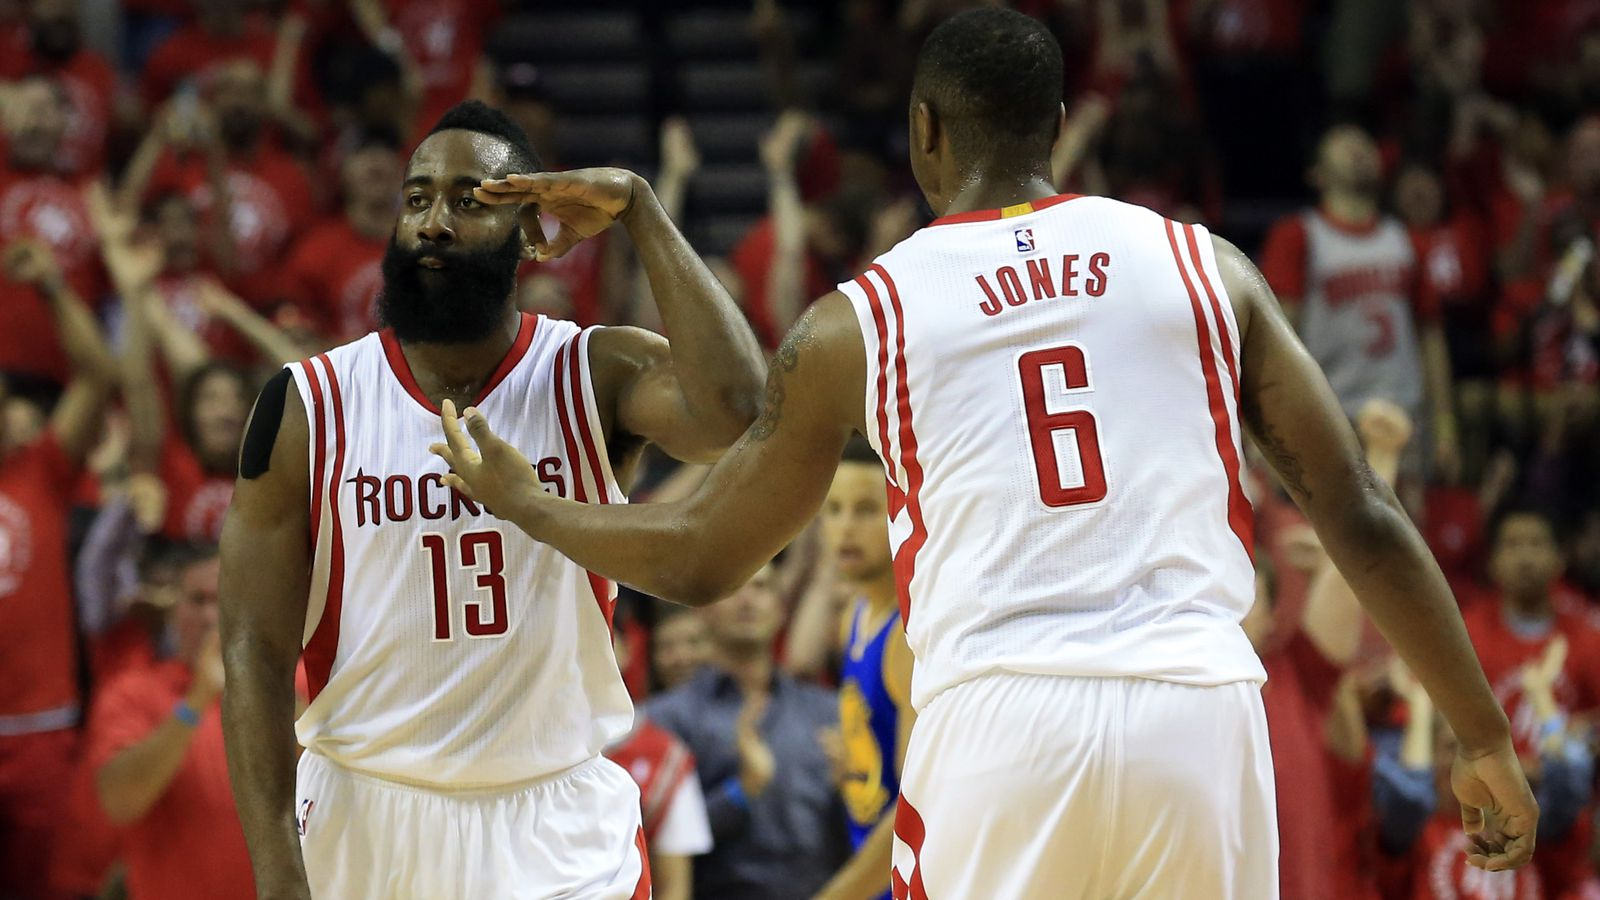 Rockets vs. Warriors Game 4 final score: Harden helps Houston keep hope alive - The Dream Shake